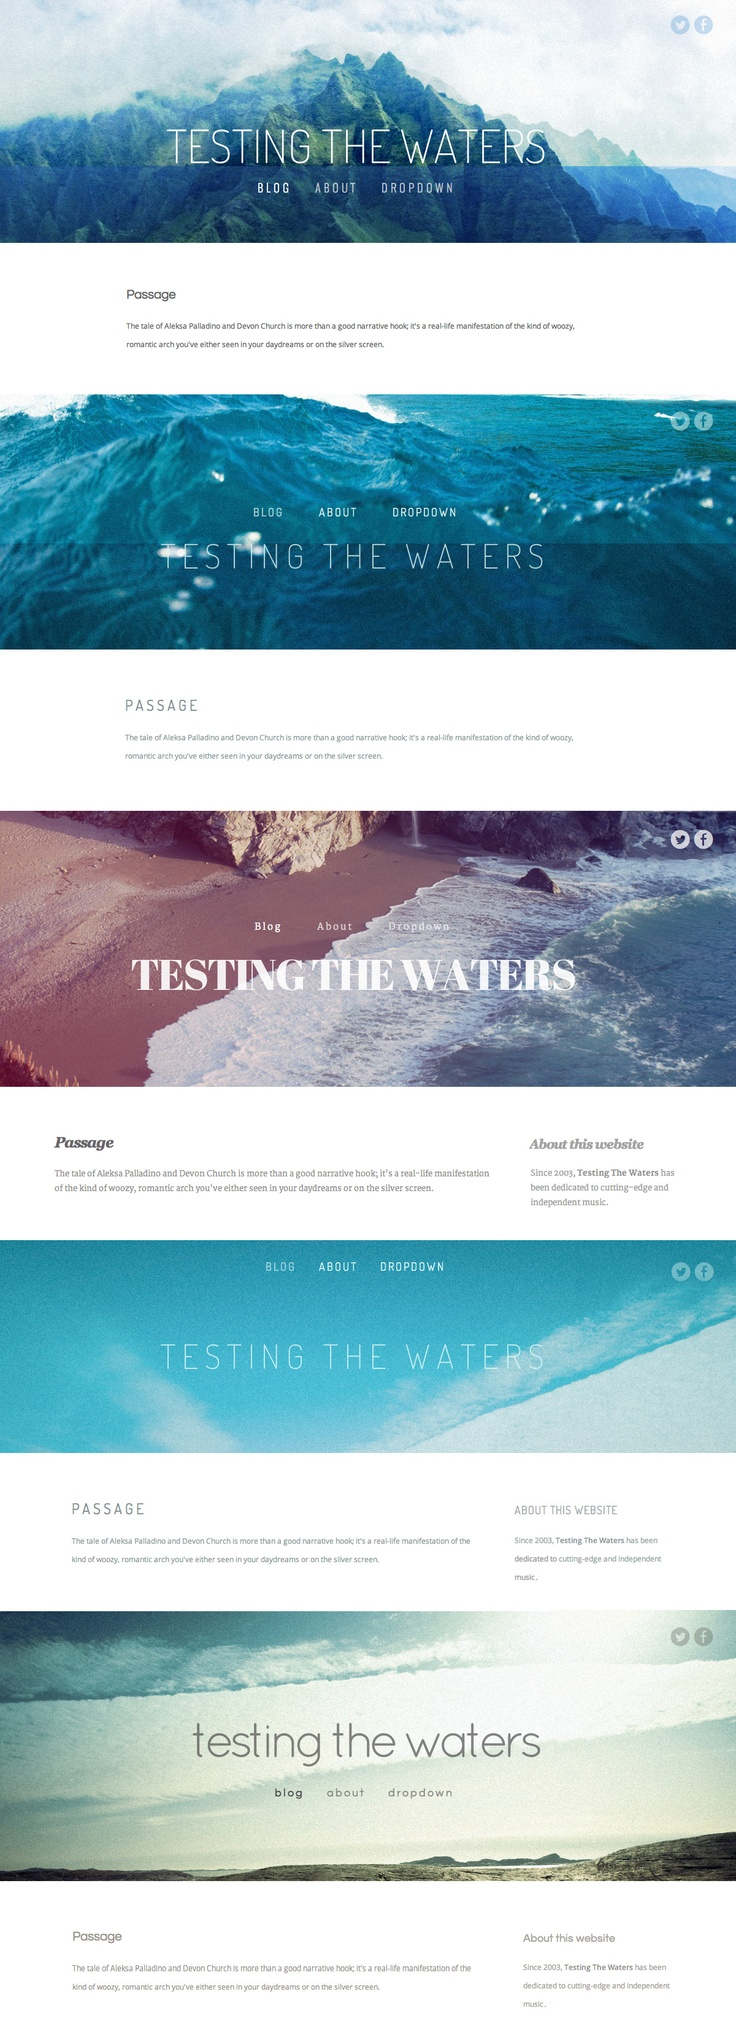 Horizon-lg: Web Design, Web Interactive Ui, Multimedia Design, Squarespac Templates, Squarespace Tips, Water Squarespac, Prints Design, Blogging Website Design, Design Website